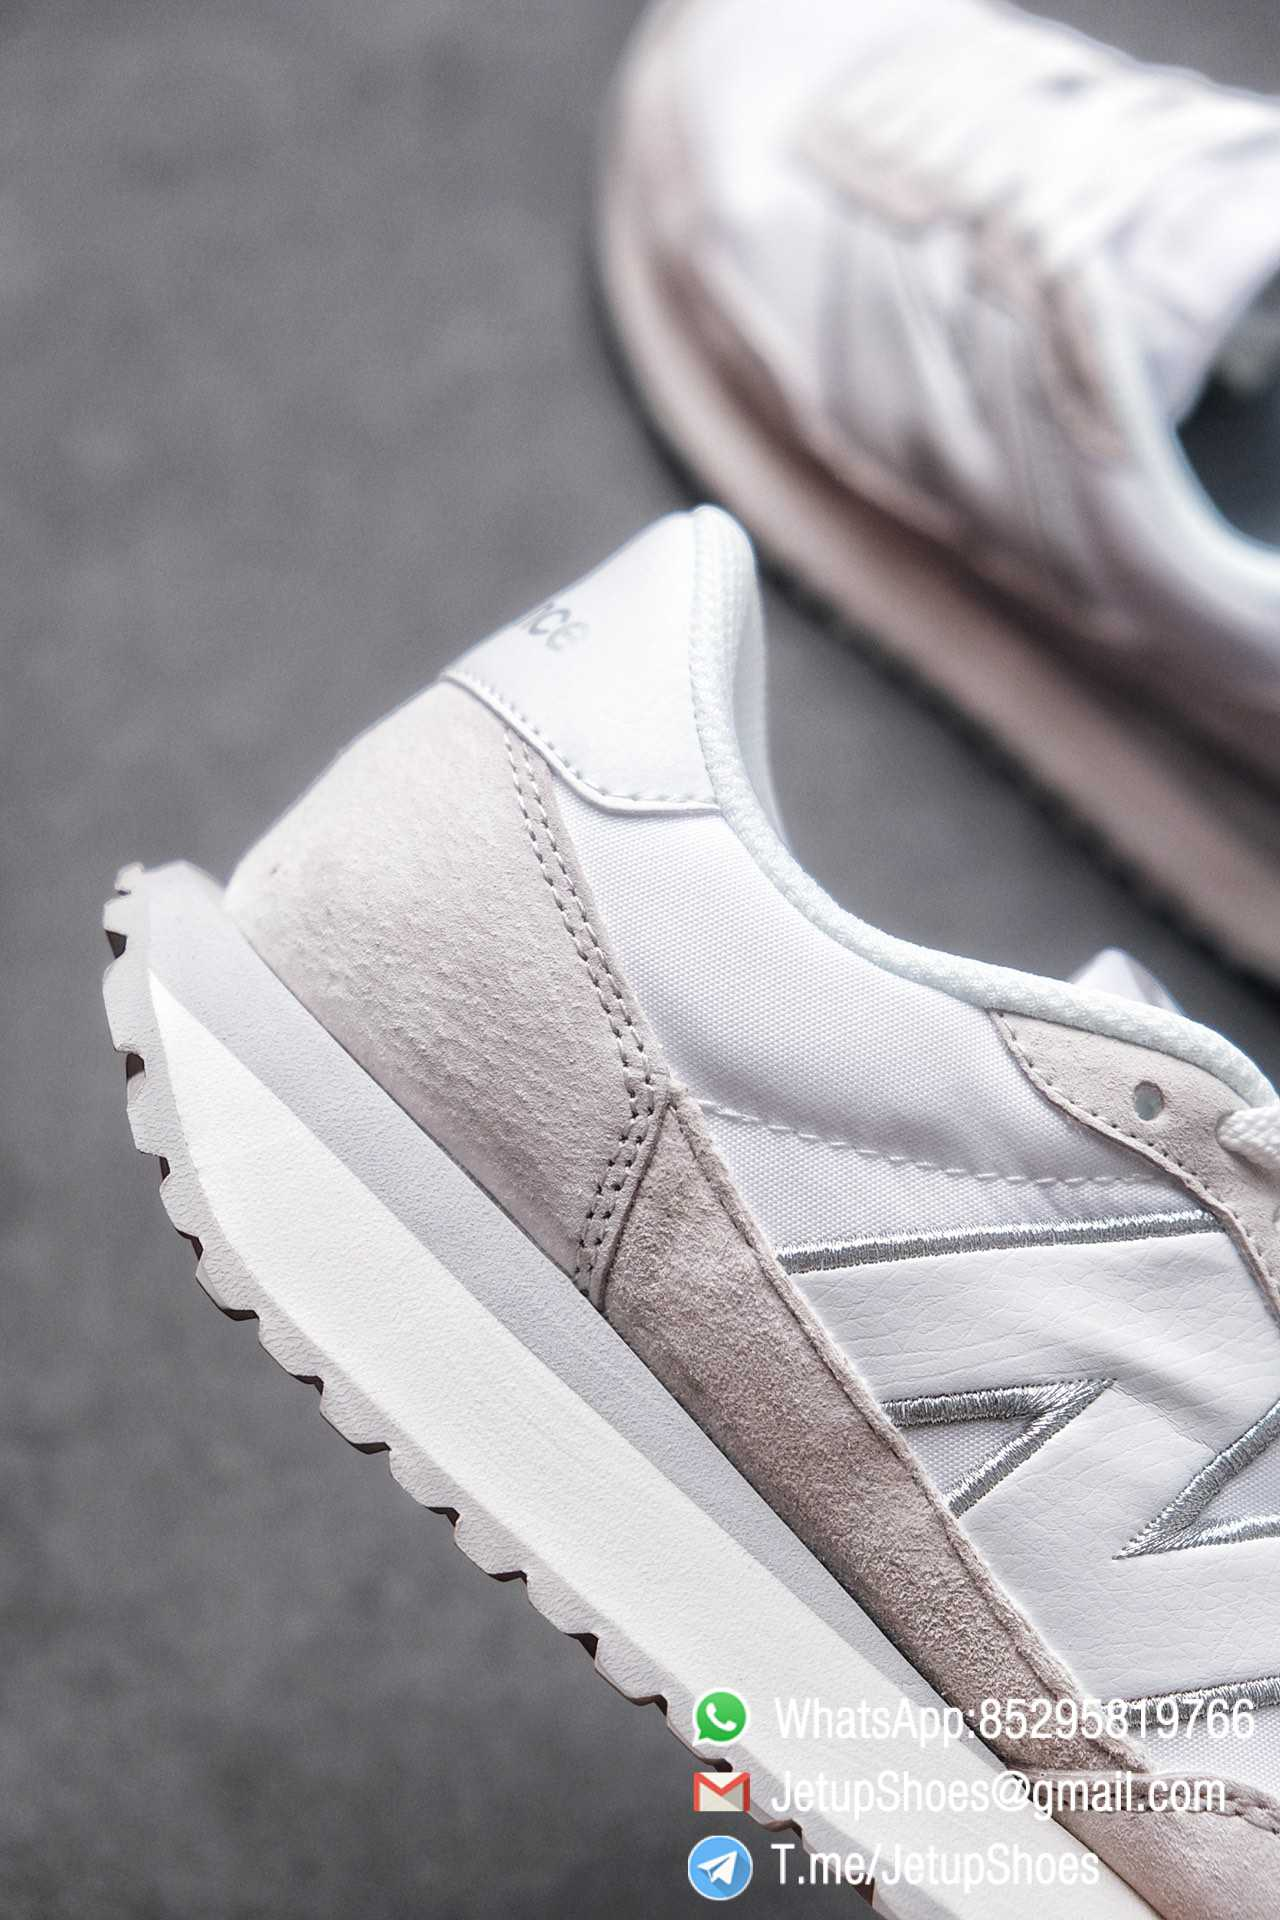 Best Replica 2021 New Balance 237 White Light Grey SKU MS237NW1 High Quality Running Sneakers 07